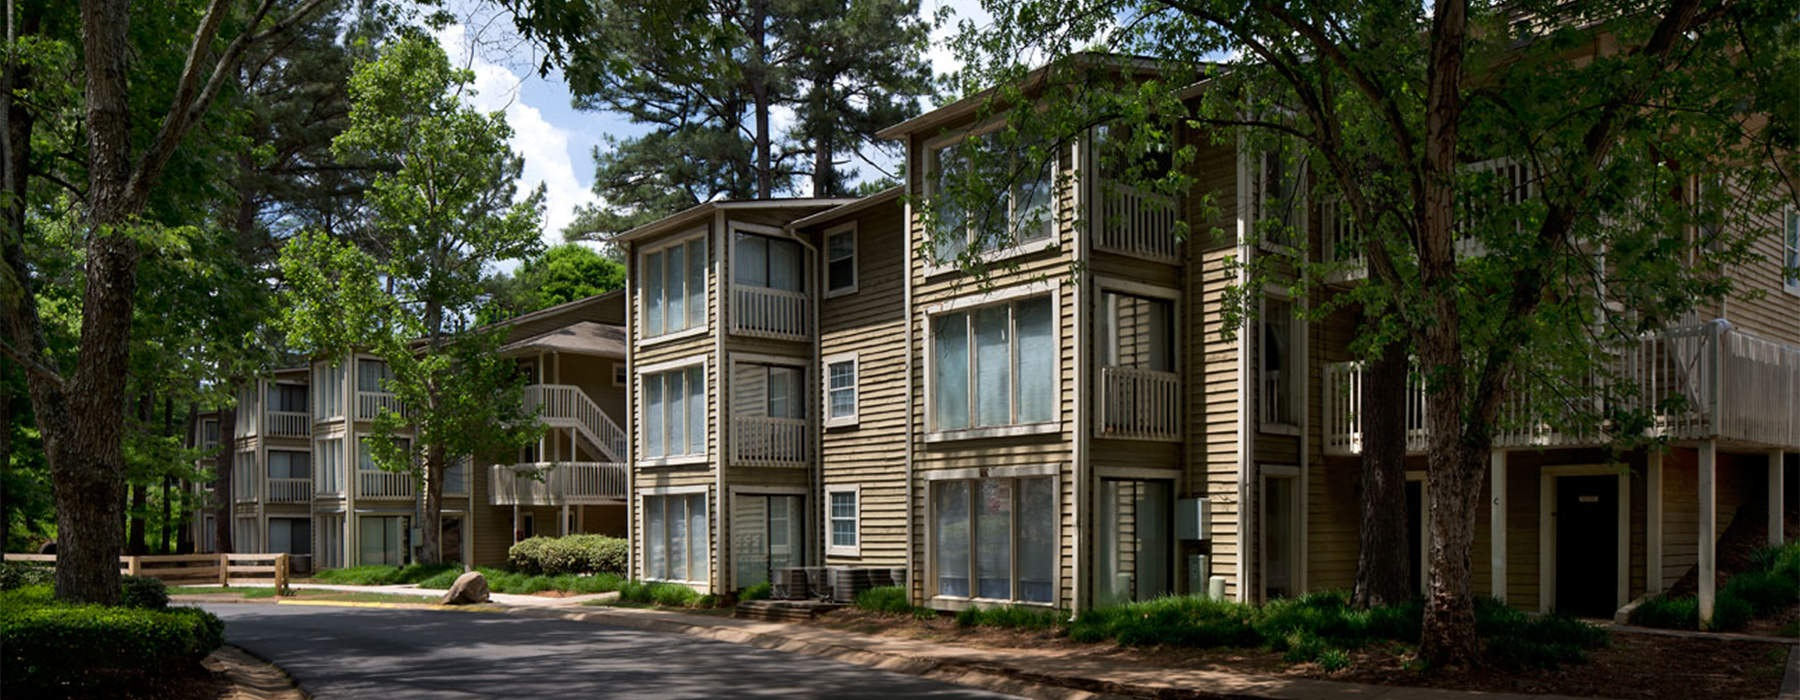 Exterior view of Roswell Creek Apartments